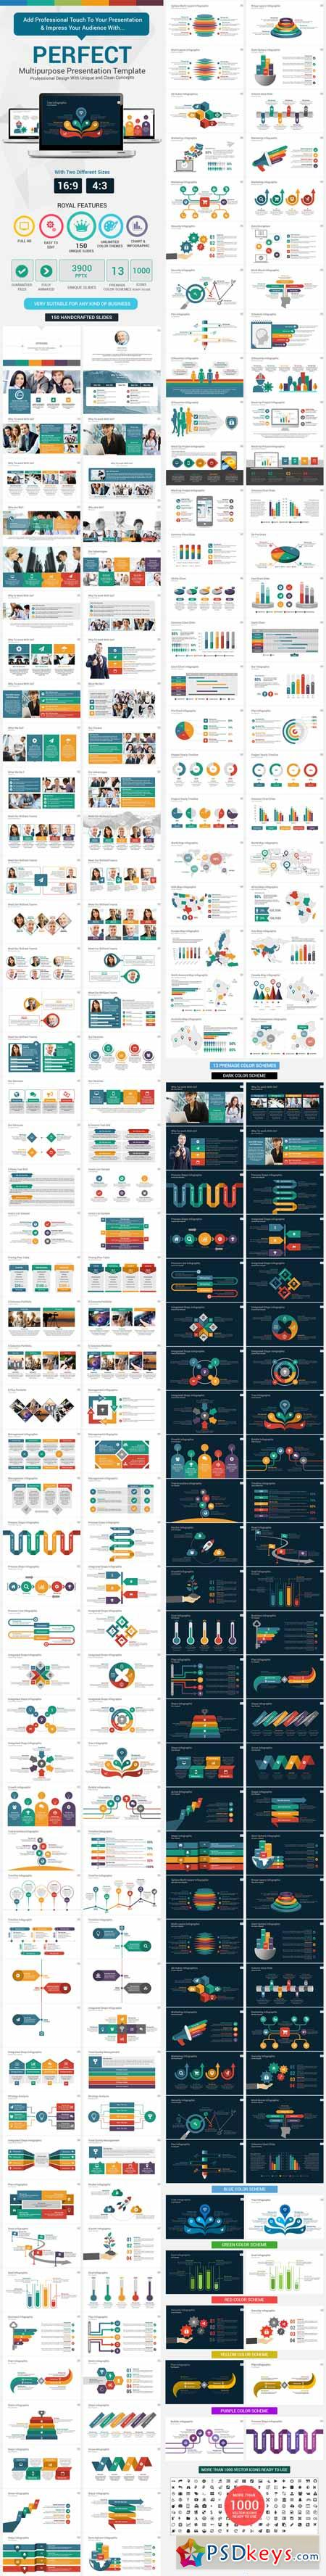 Perfect PowerPoint Presentation Template 10683886